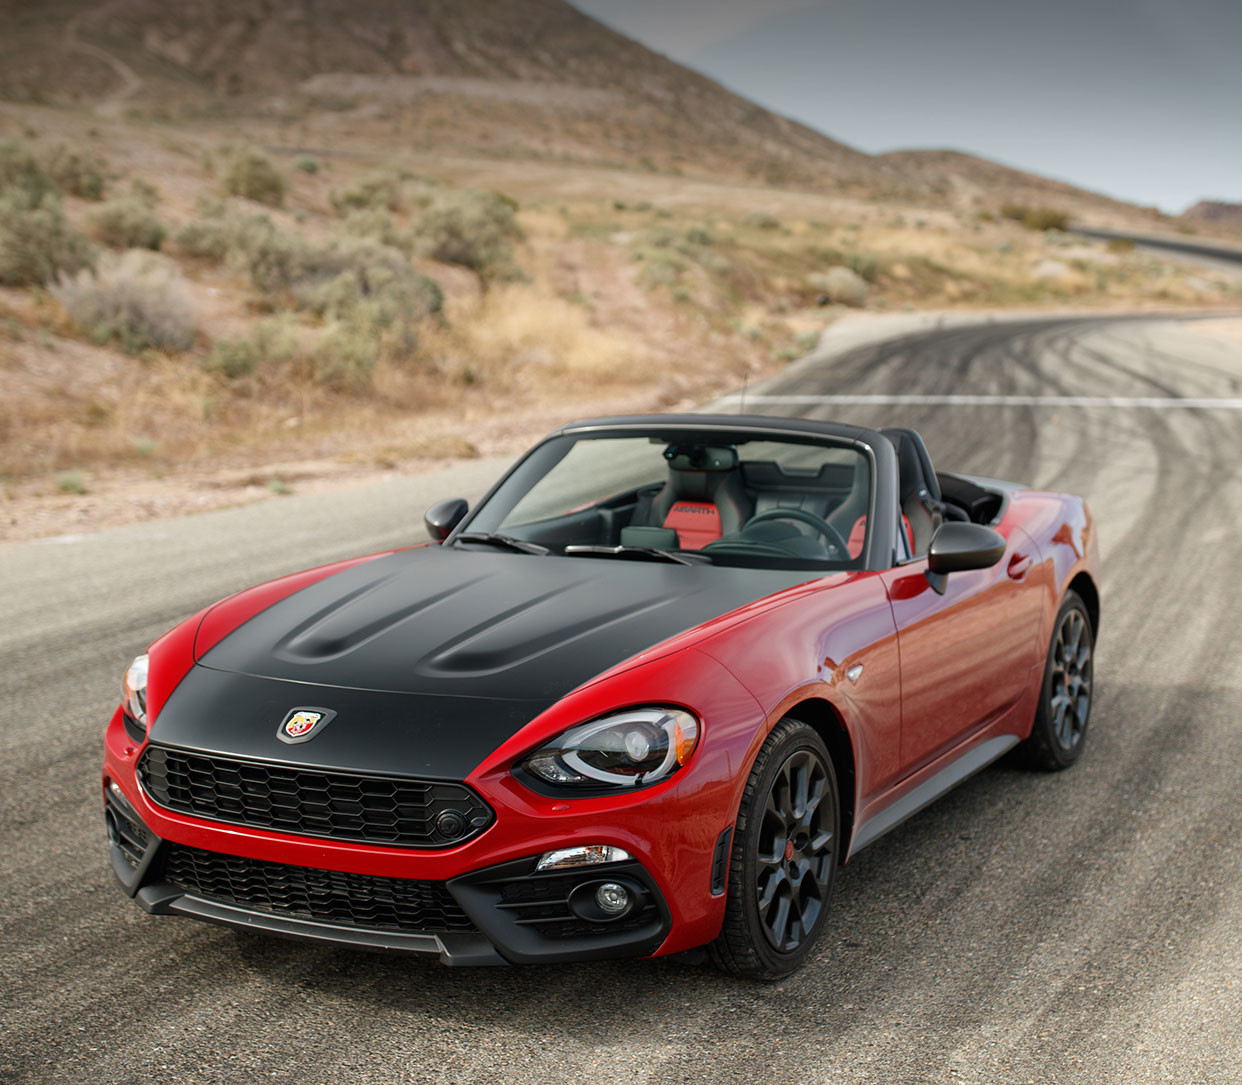 2019 124 Fiat Spider parked, shown in white